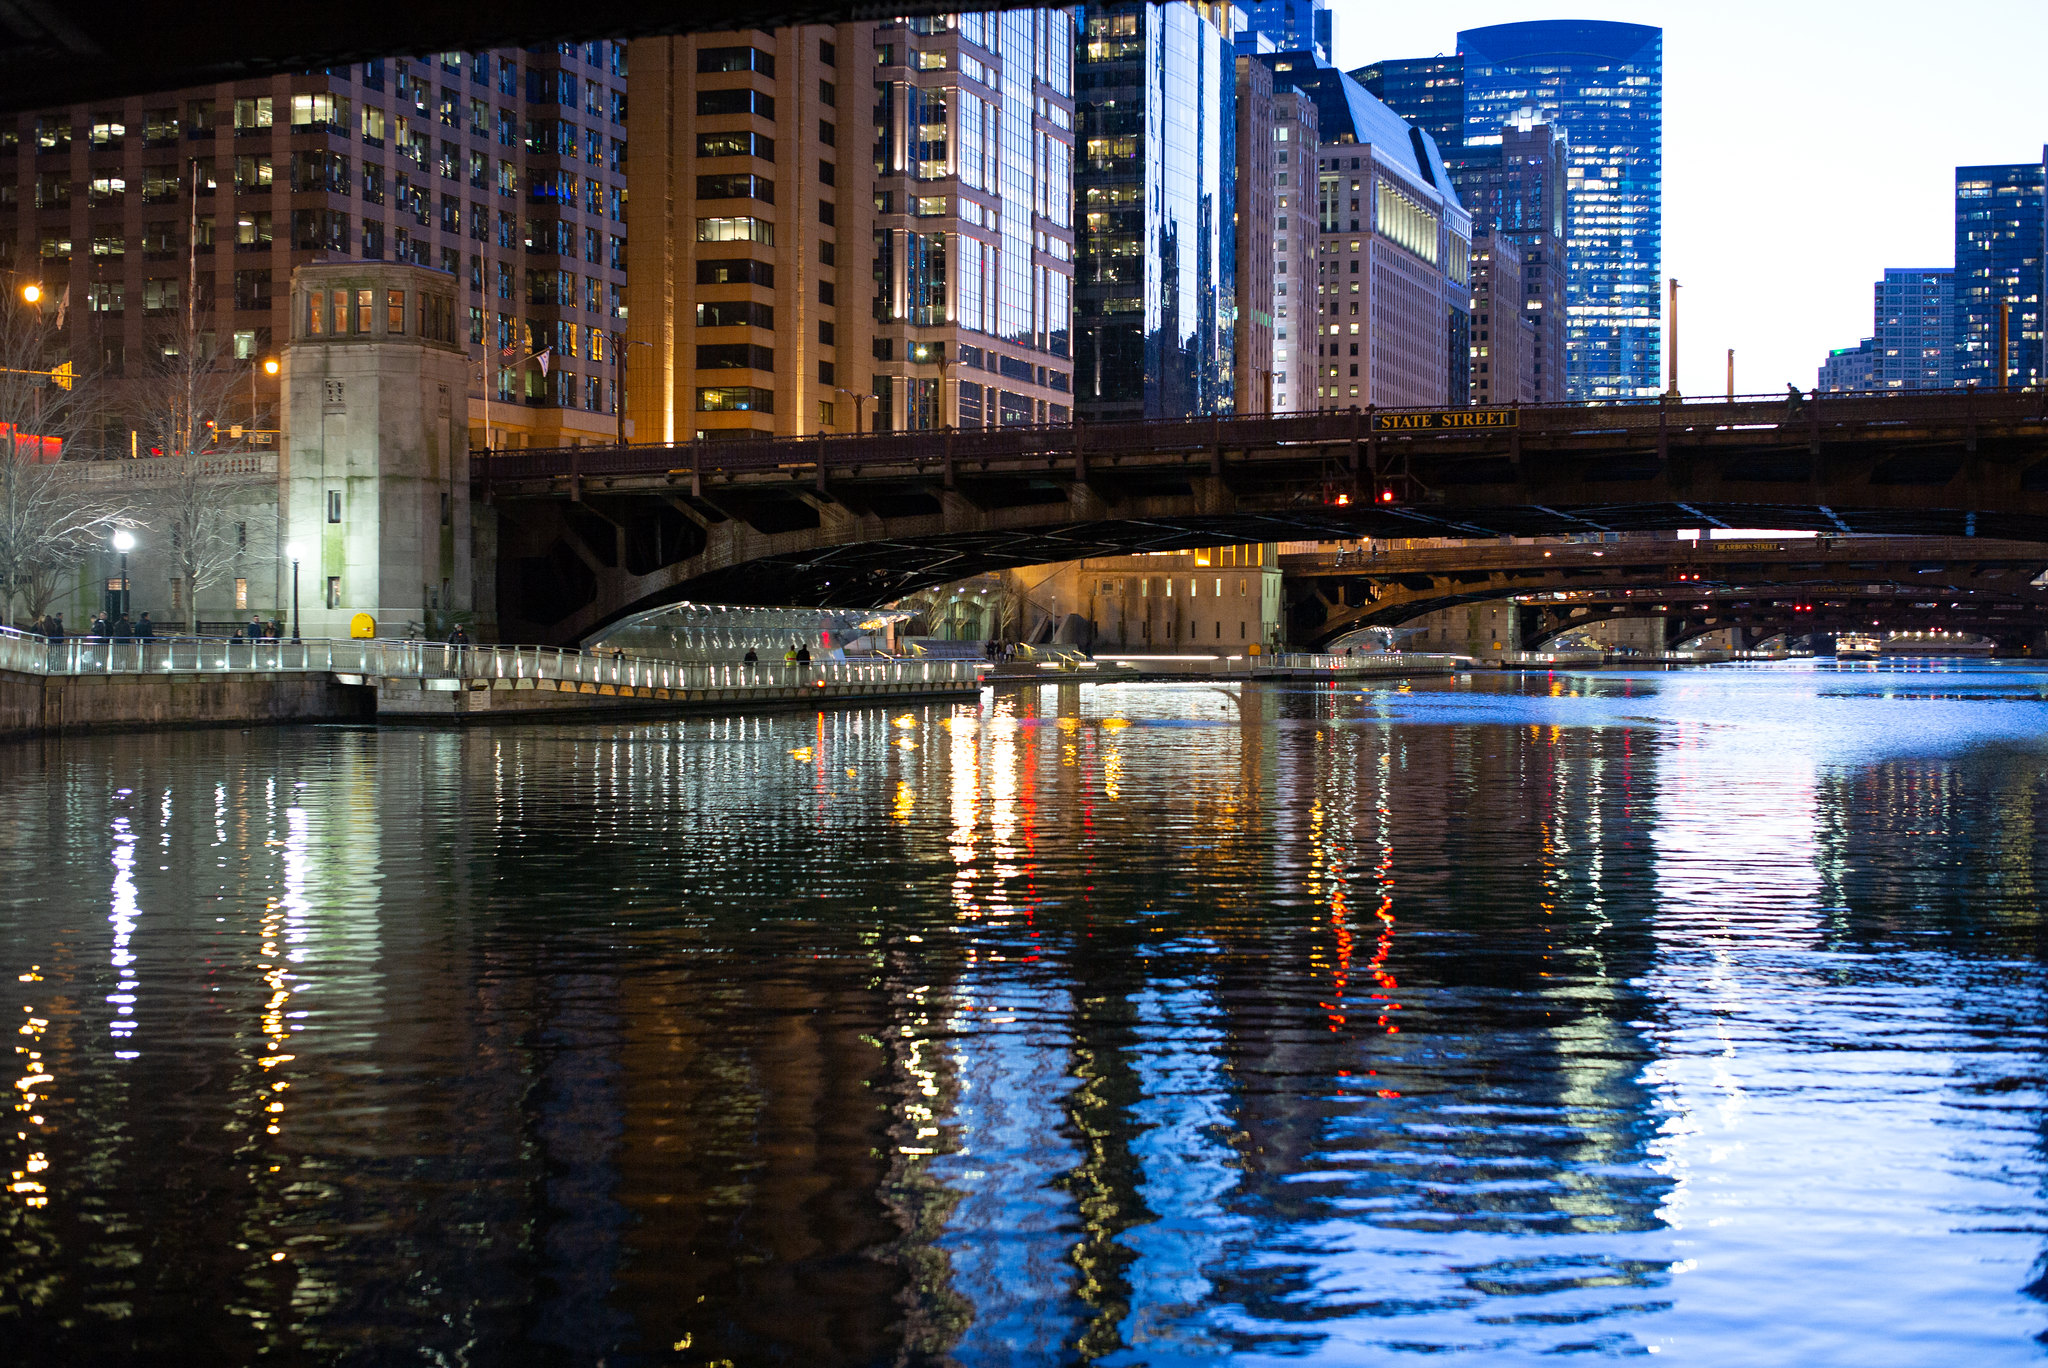 Chicago River bridges